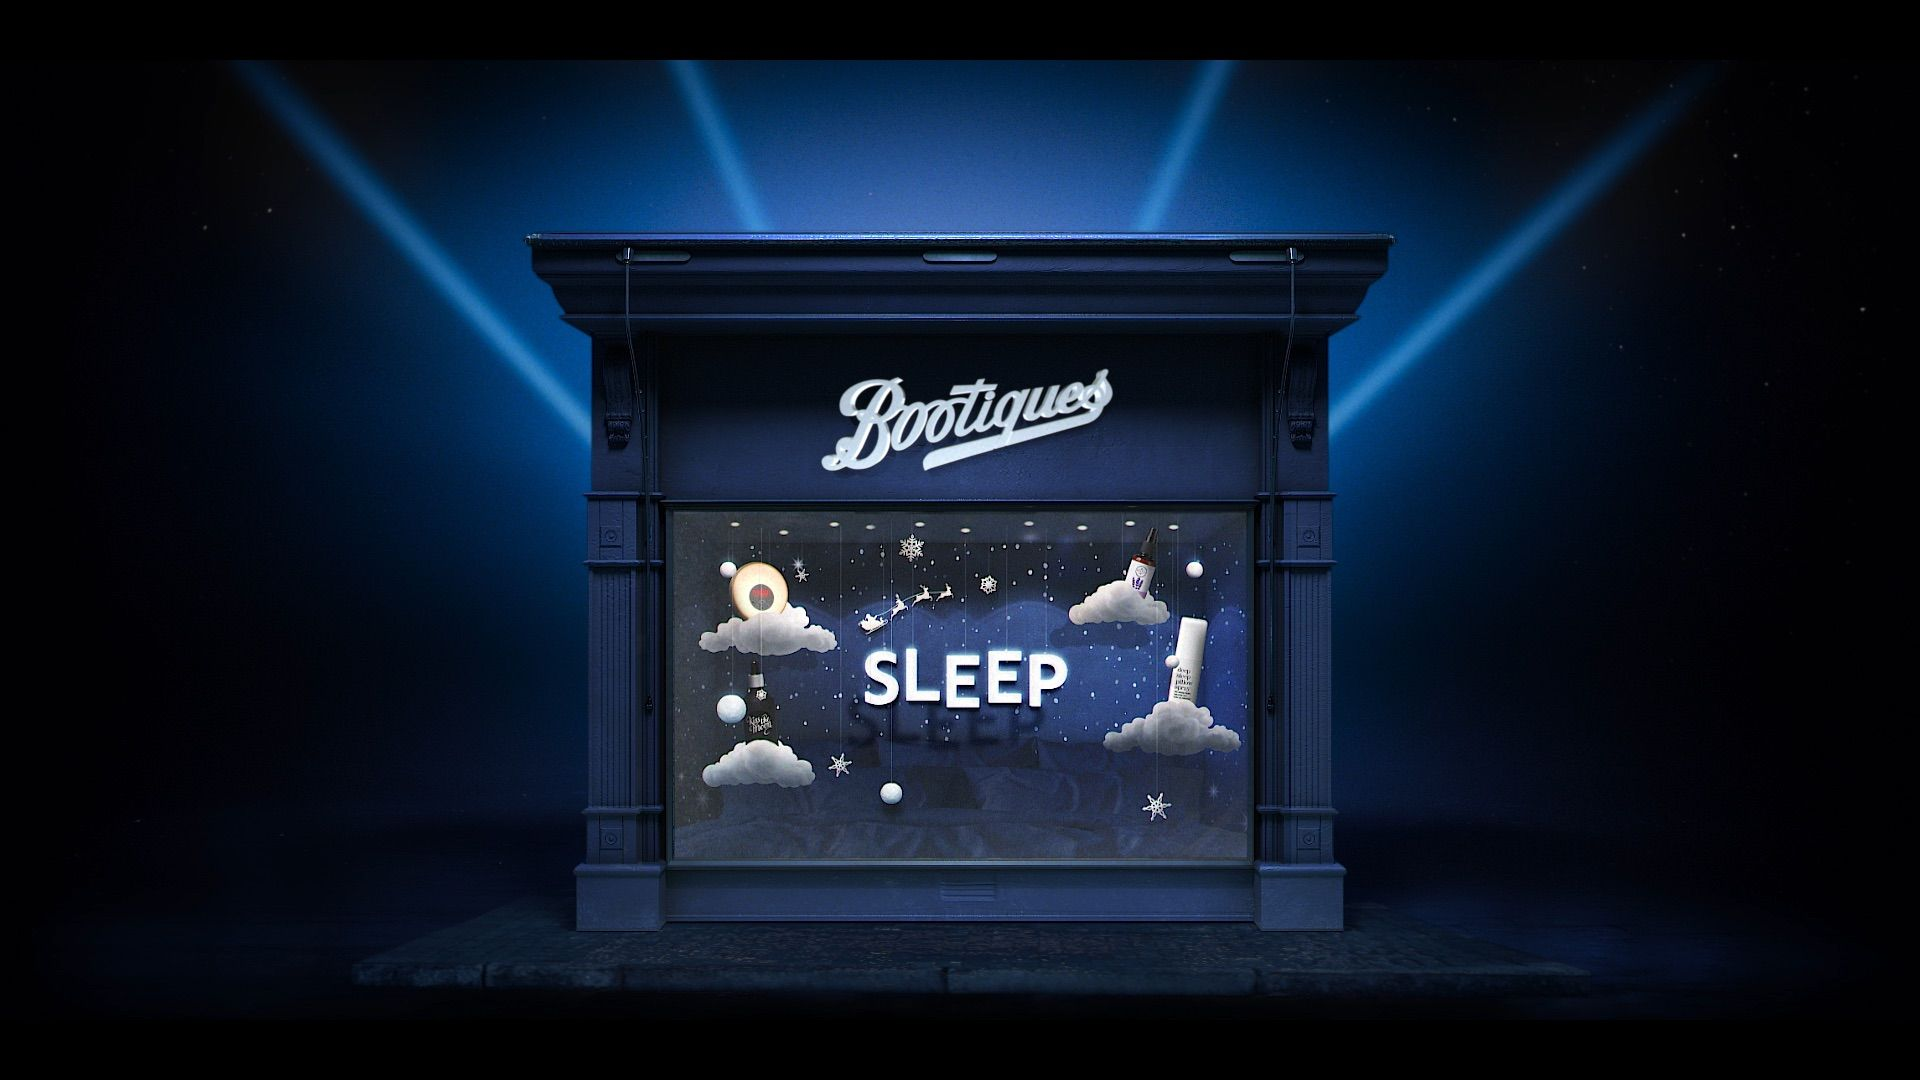 Boots Christmas Advert 2019 Launches with Bootiques, Curated